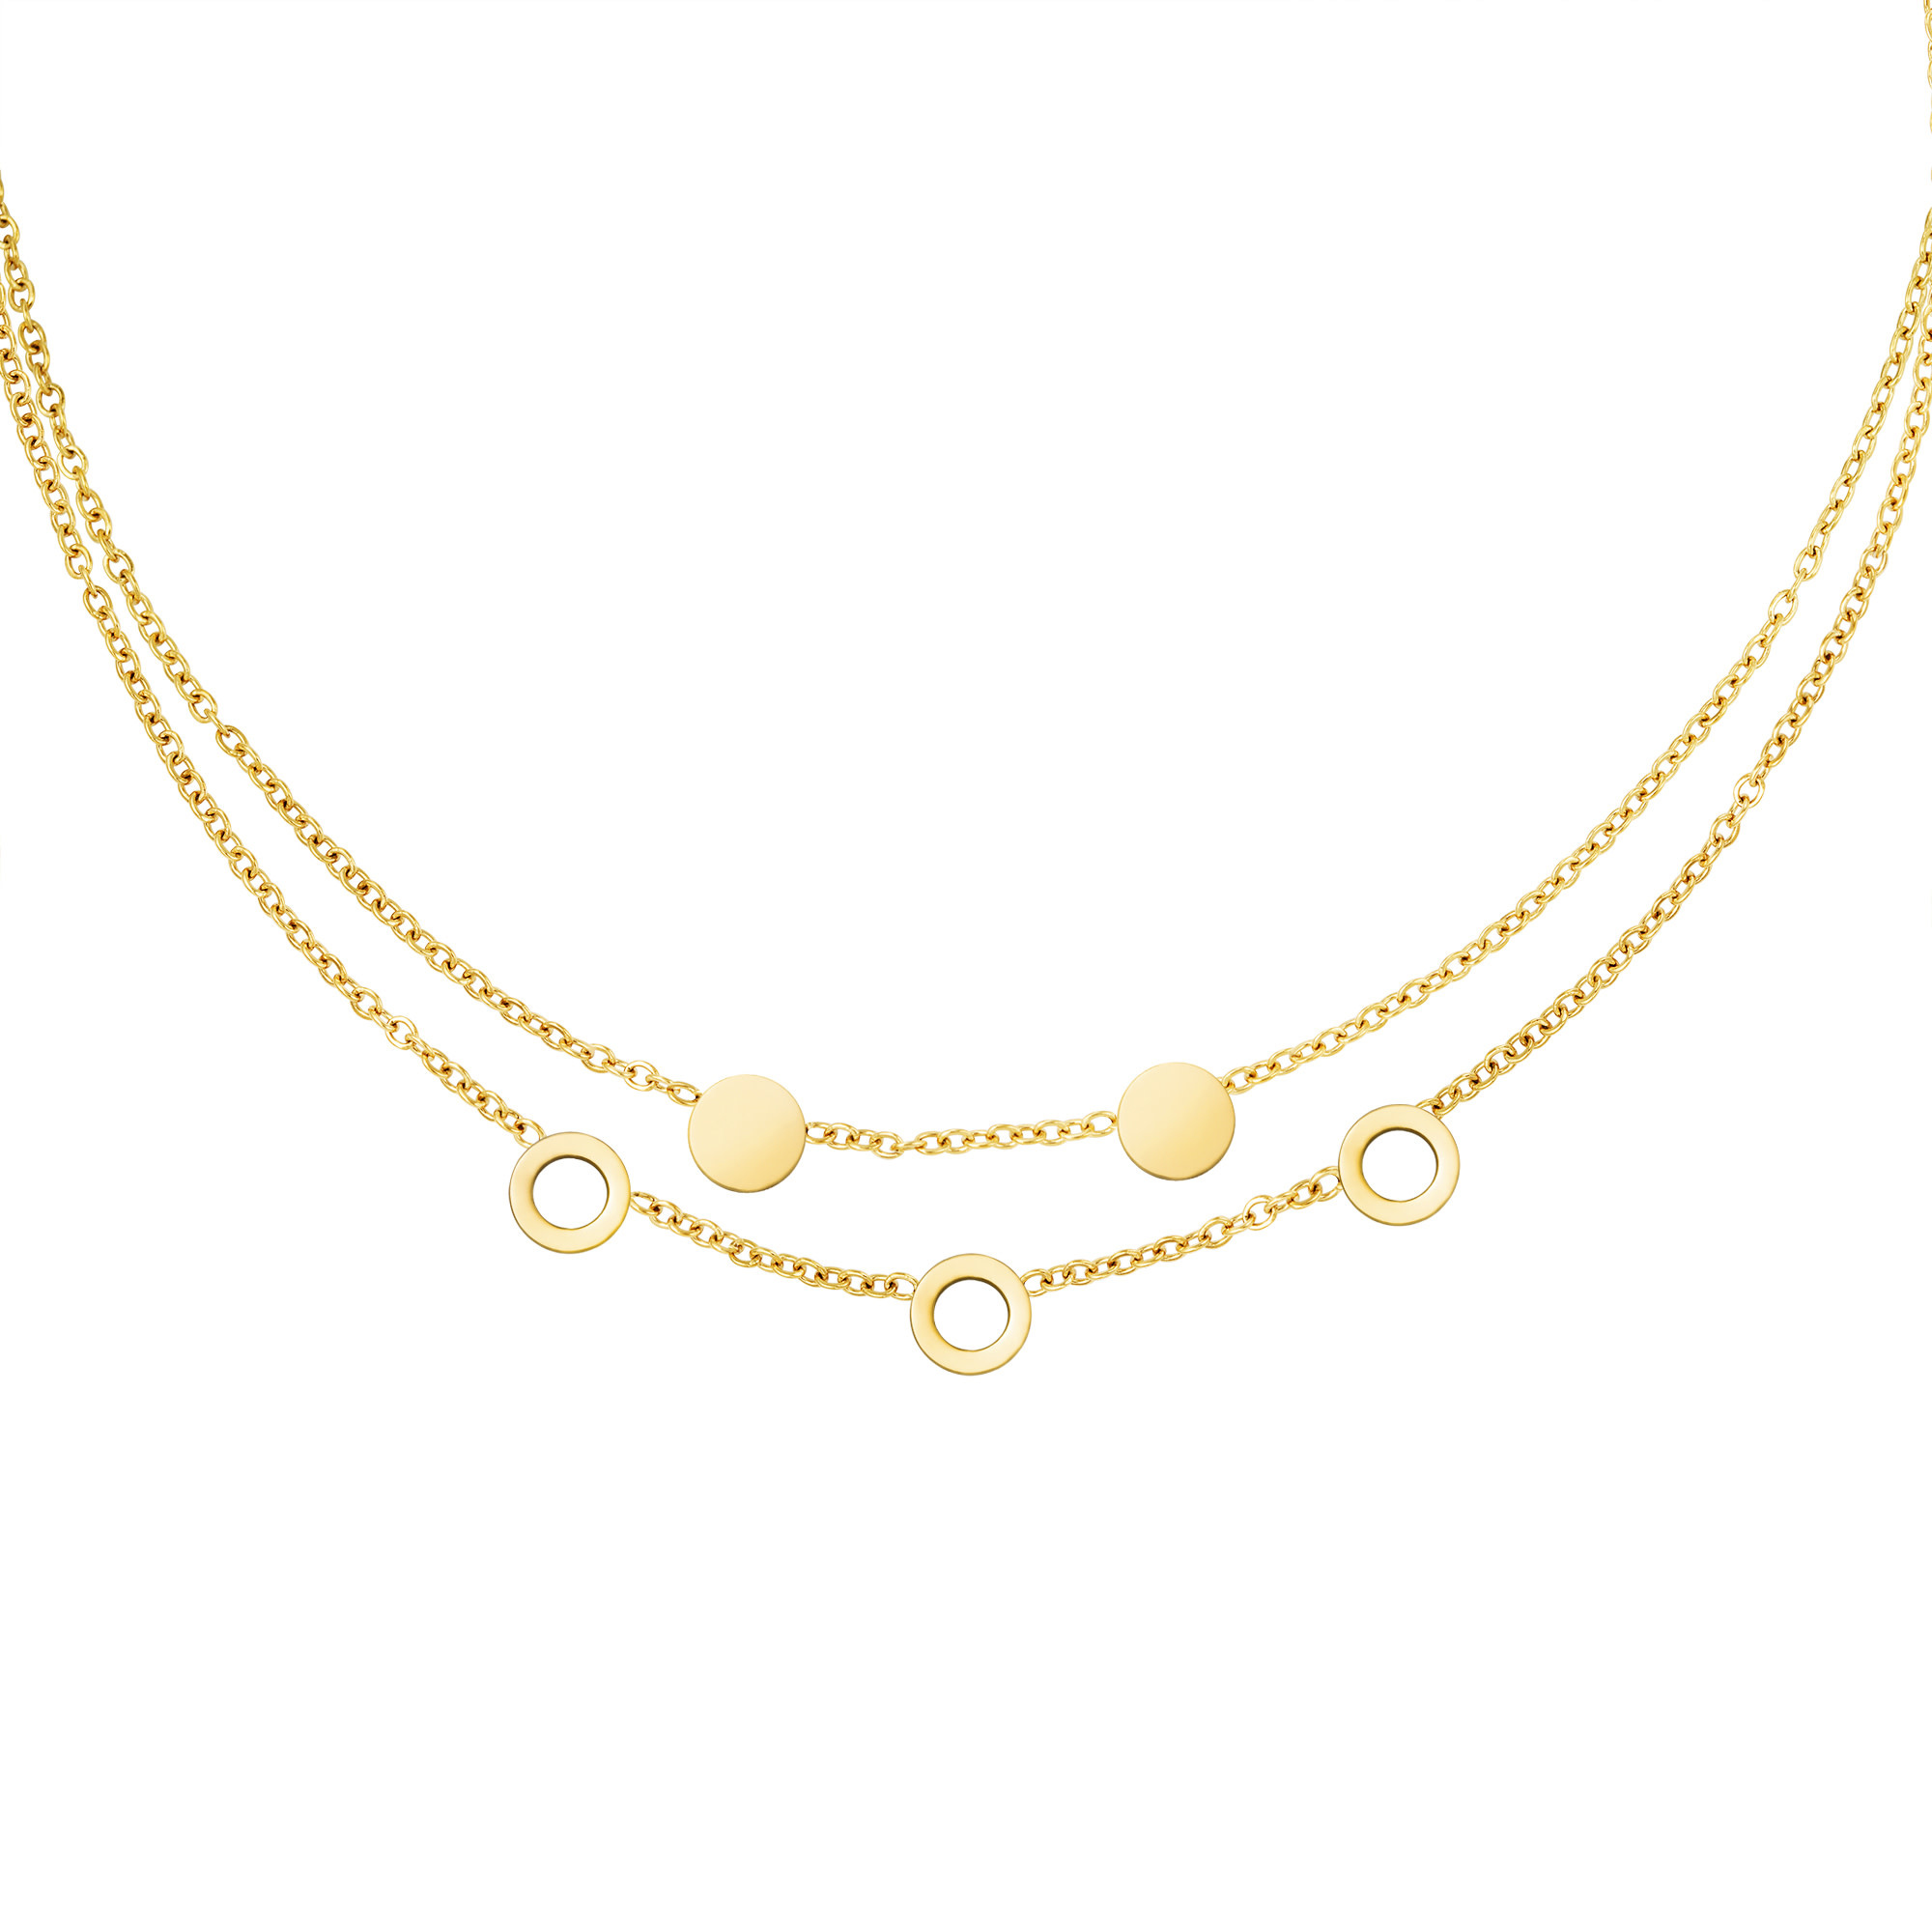 With love Necklace it's mutual gold